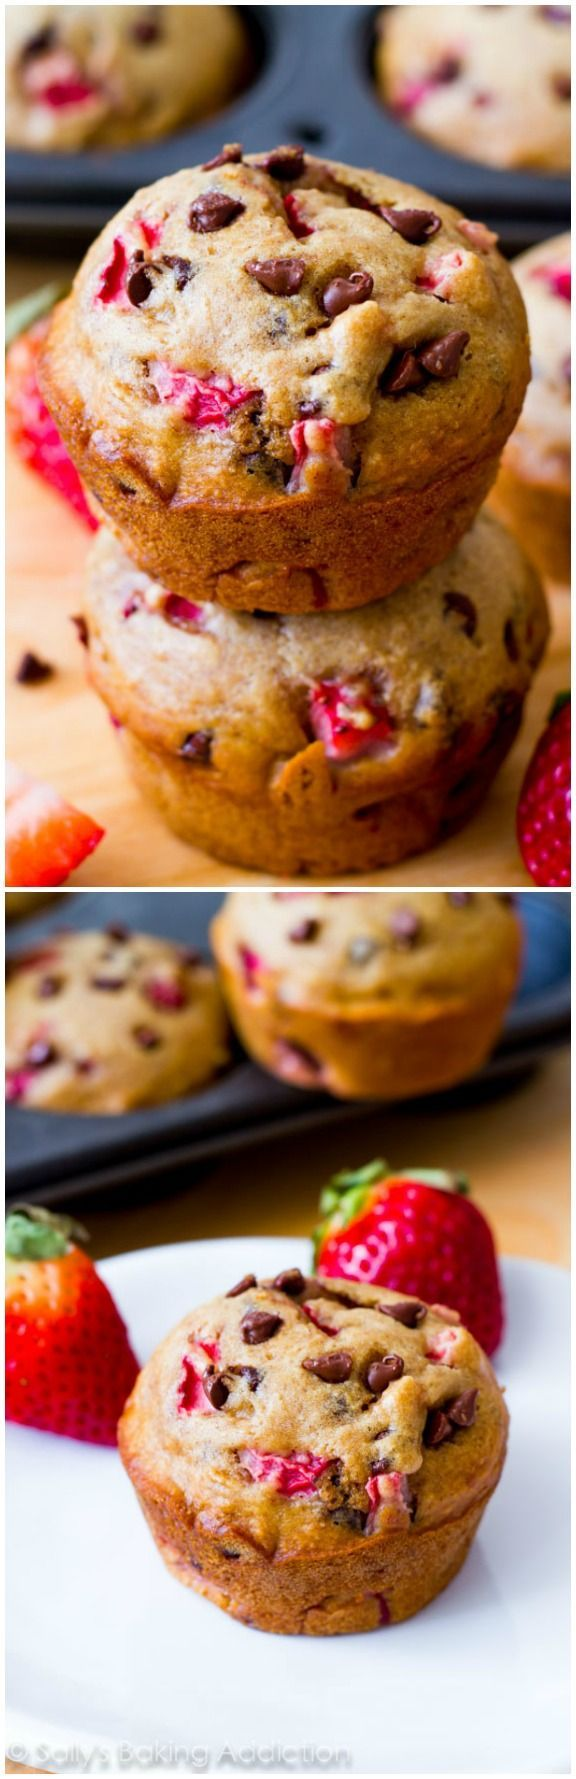 Incredible lightened-up chocolate chip muffins with fresh strawberries. Nearly fat-free and only 140 calories each!